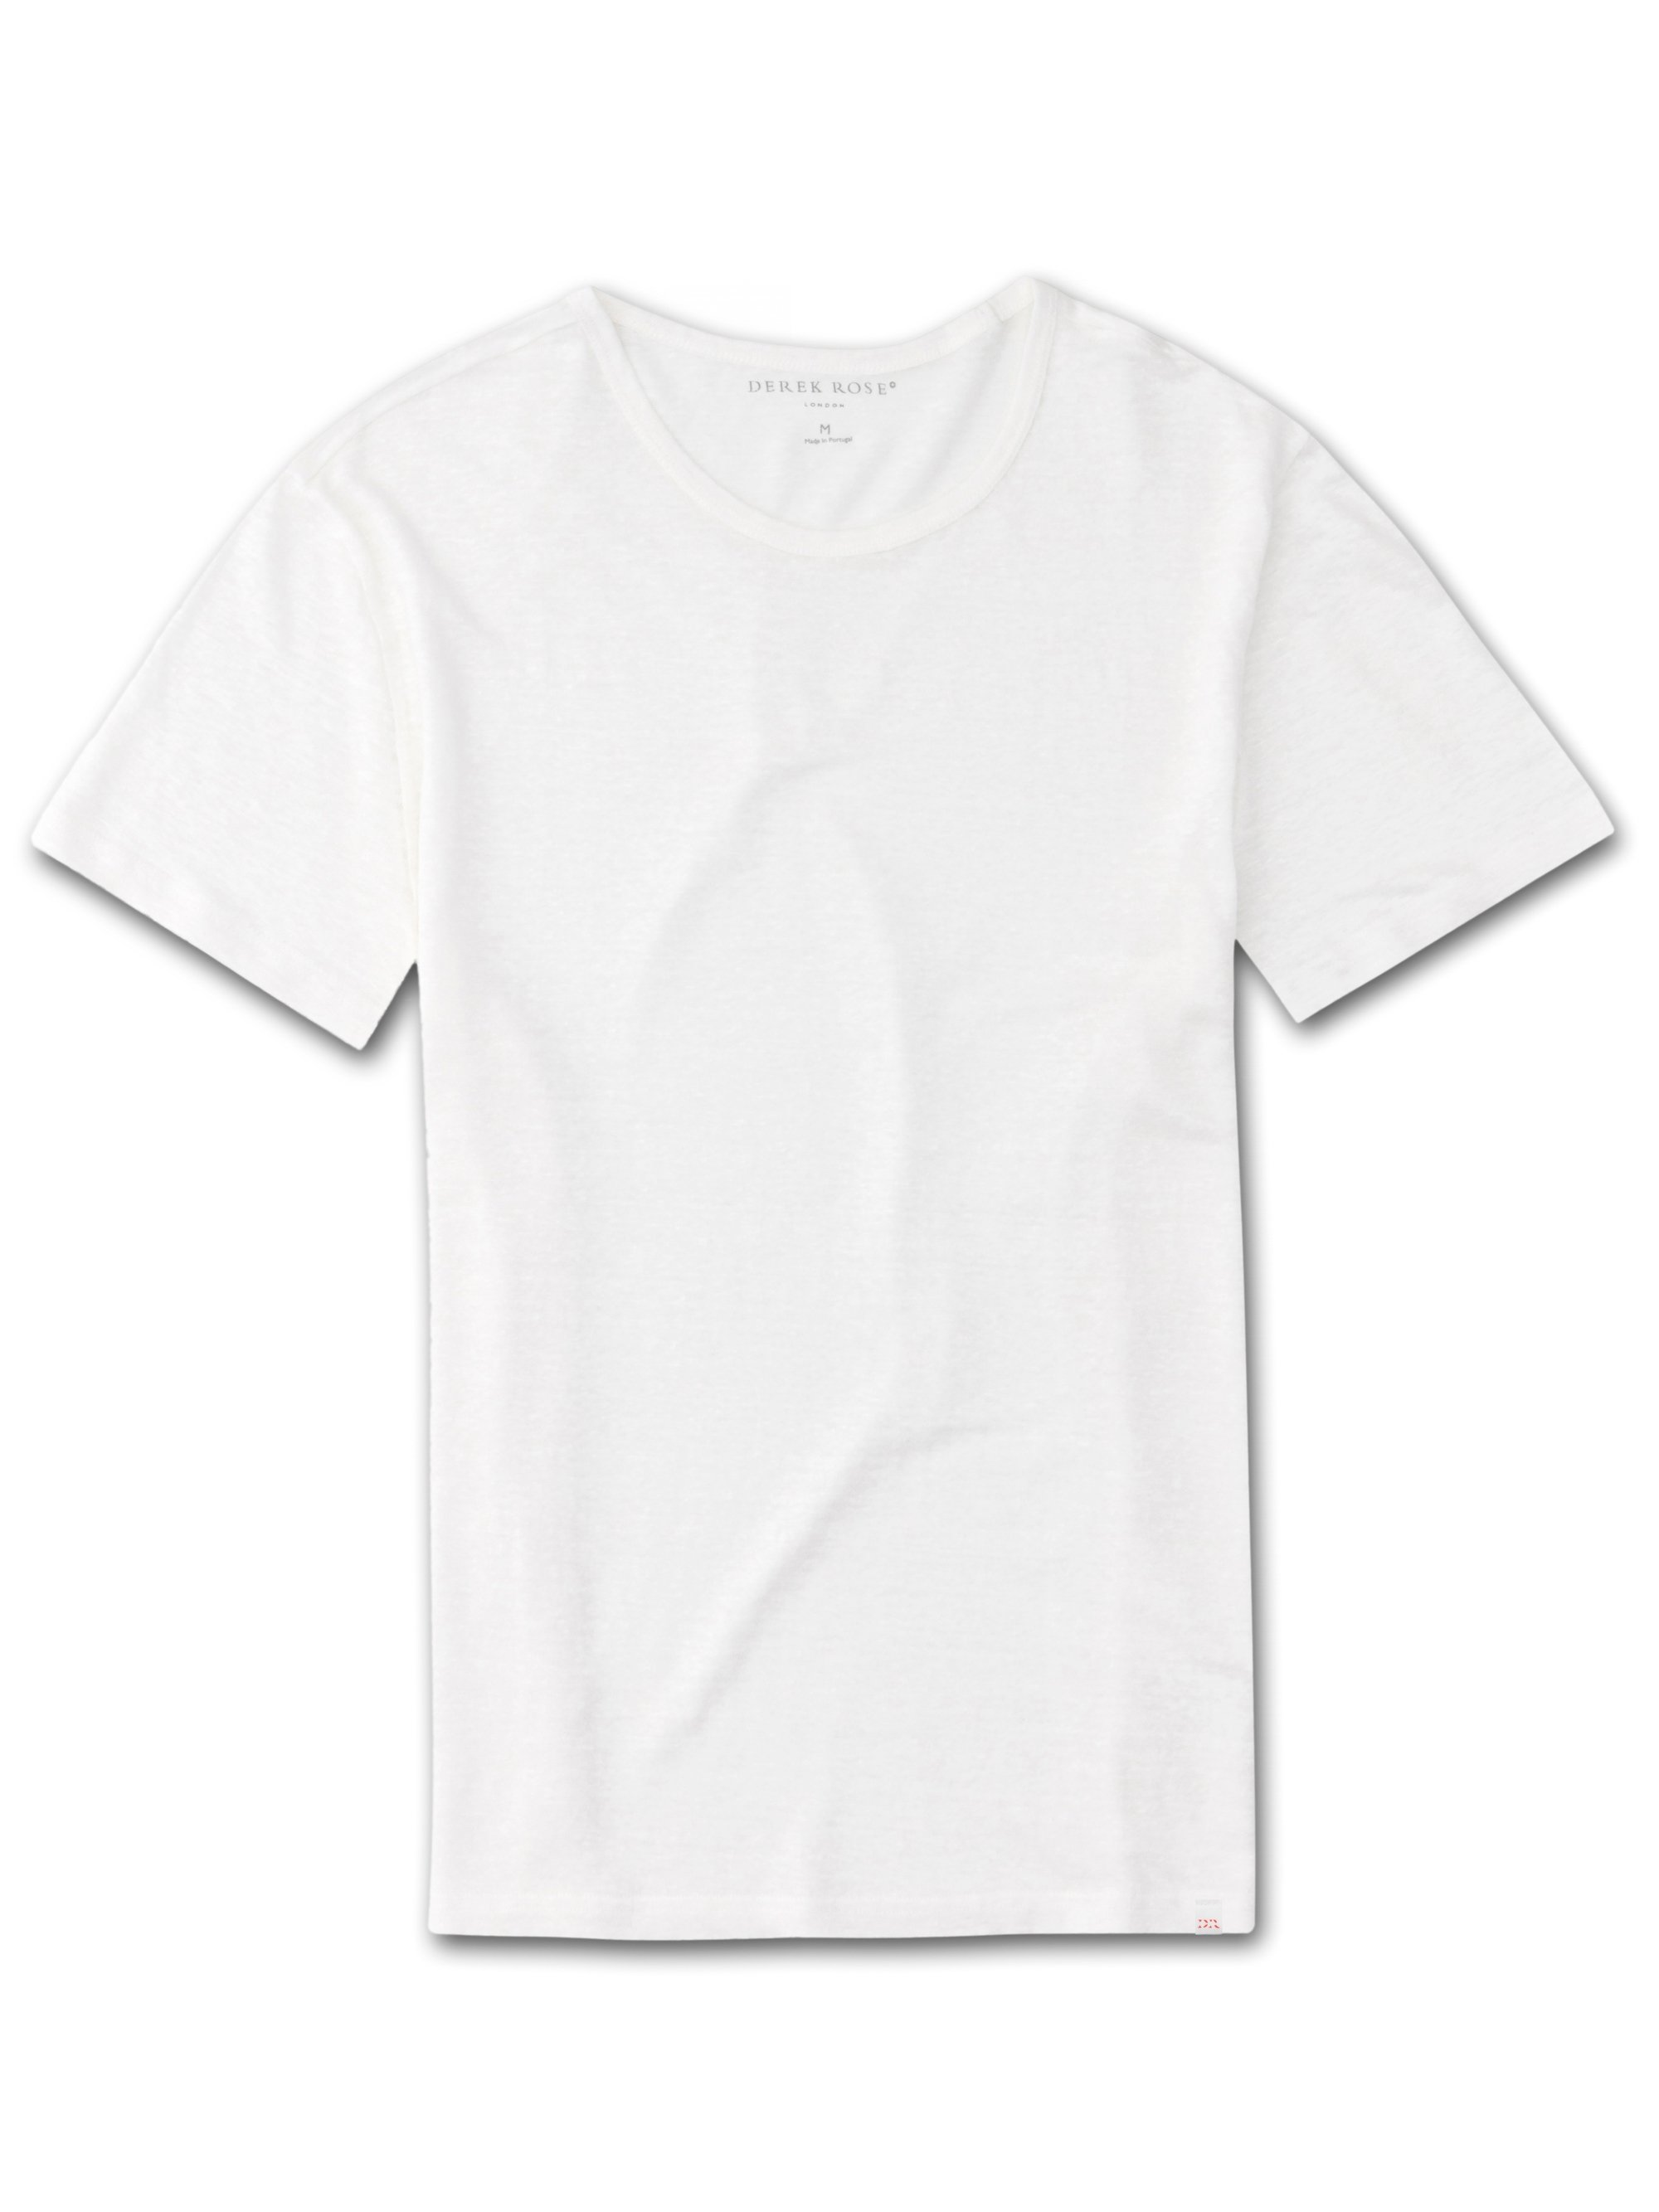 Men's Linen Short Sleeve T-Shirt Jordan Pure Linen White